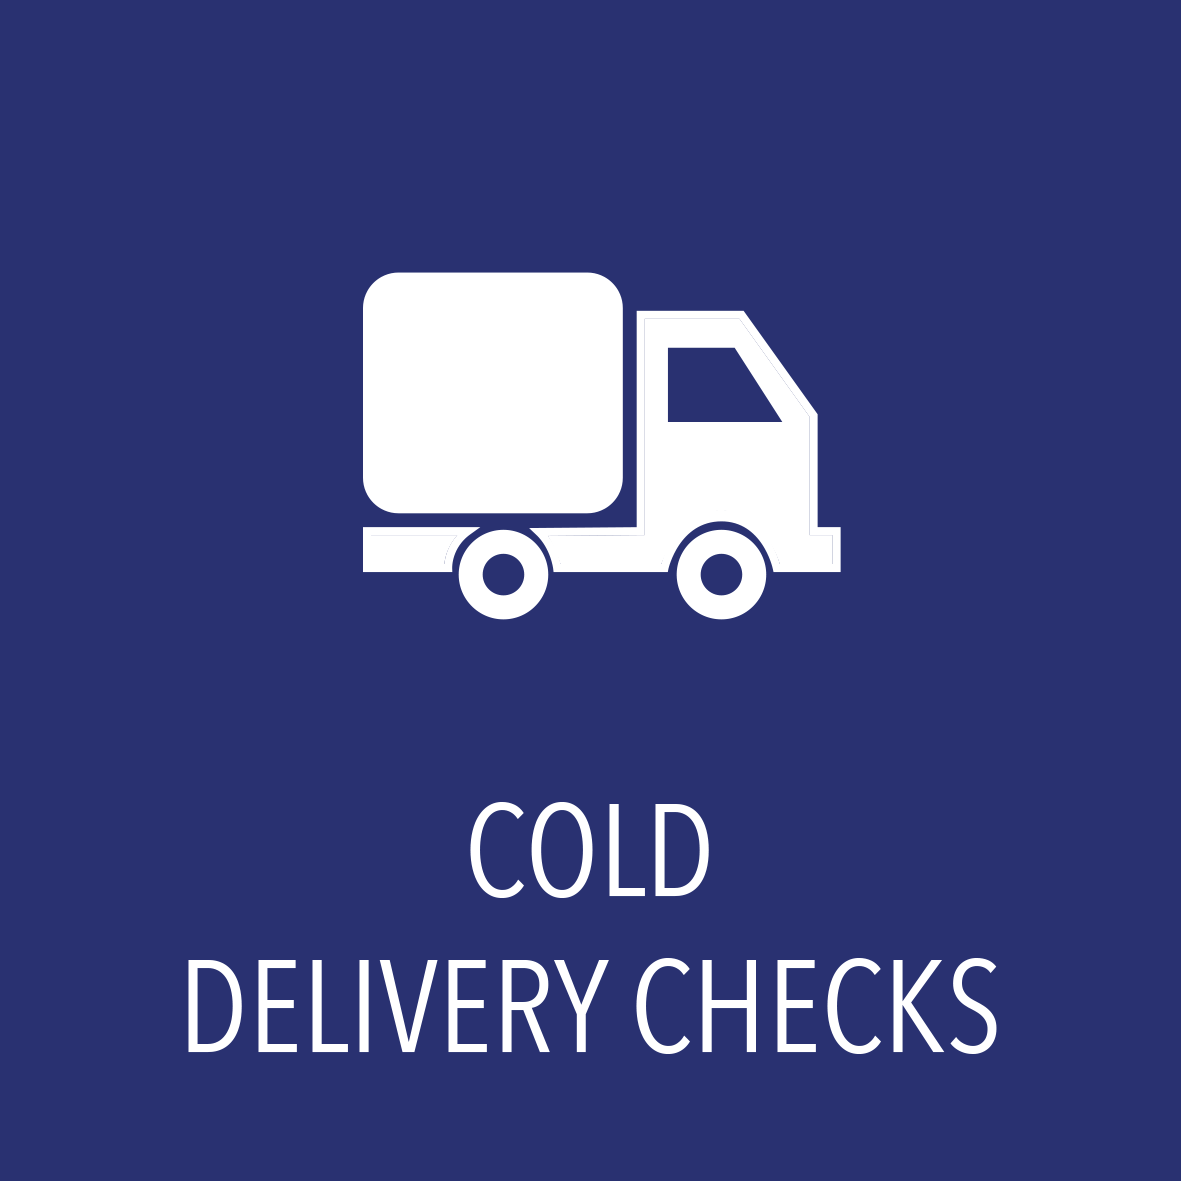 cold delivery checks.png